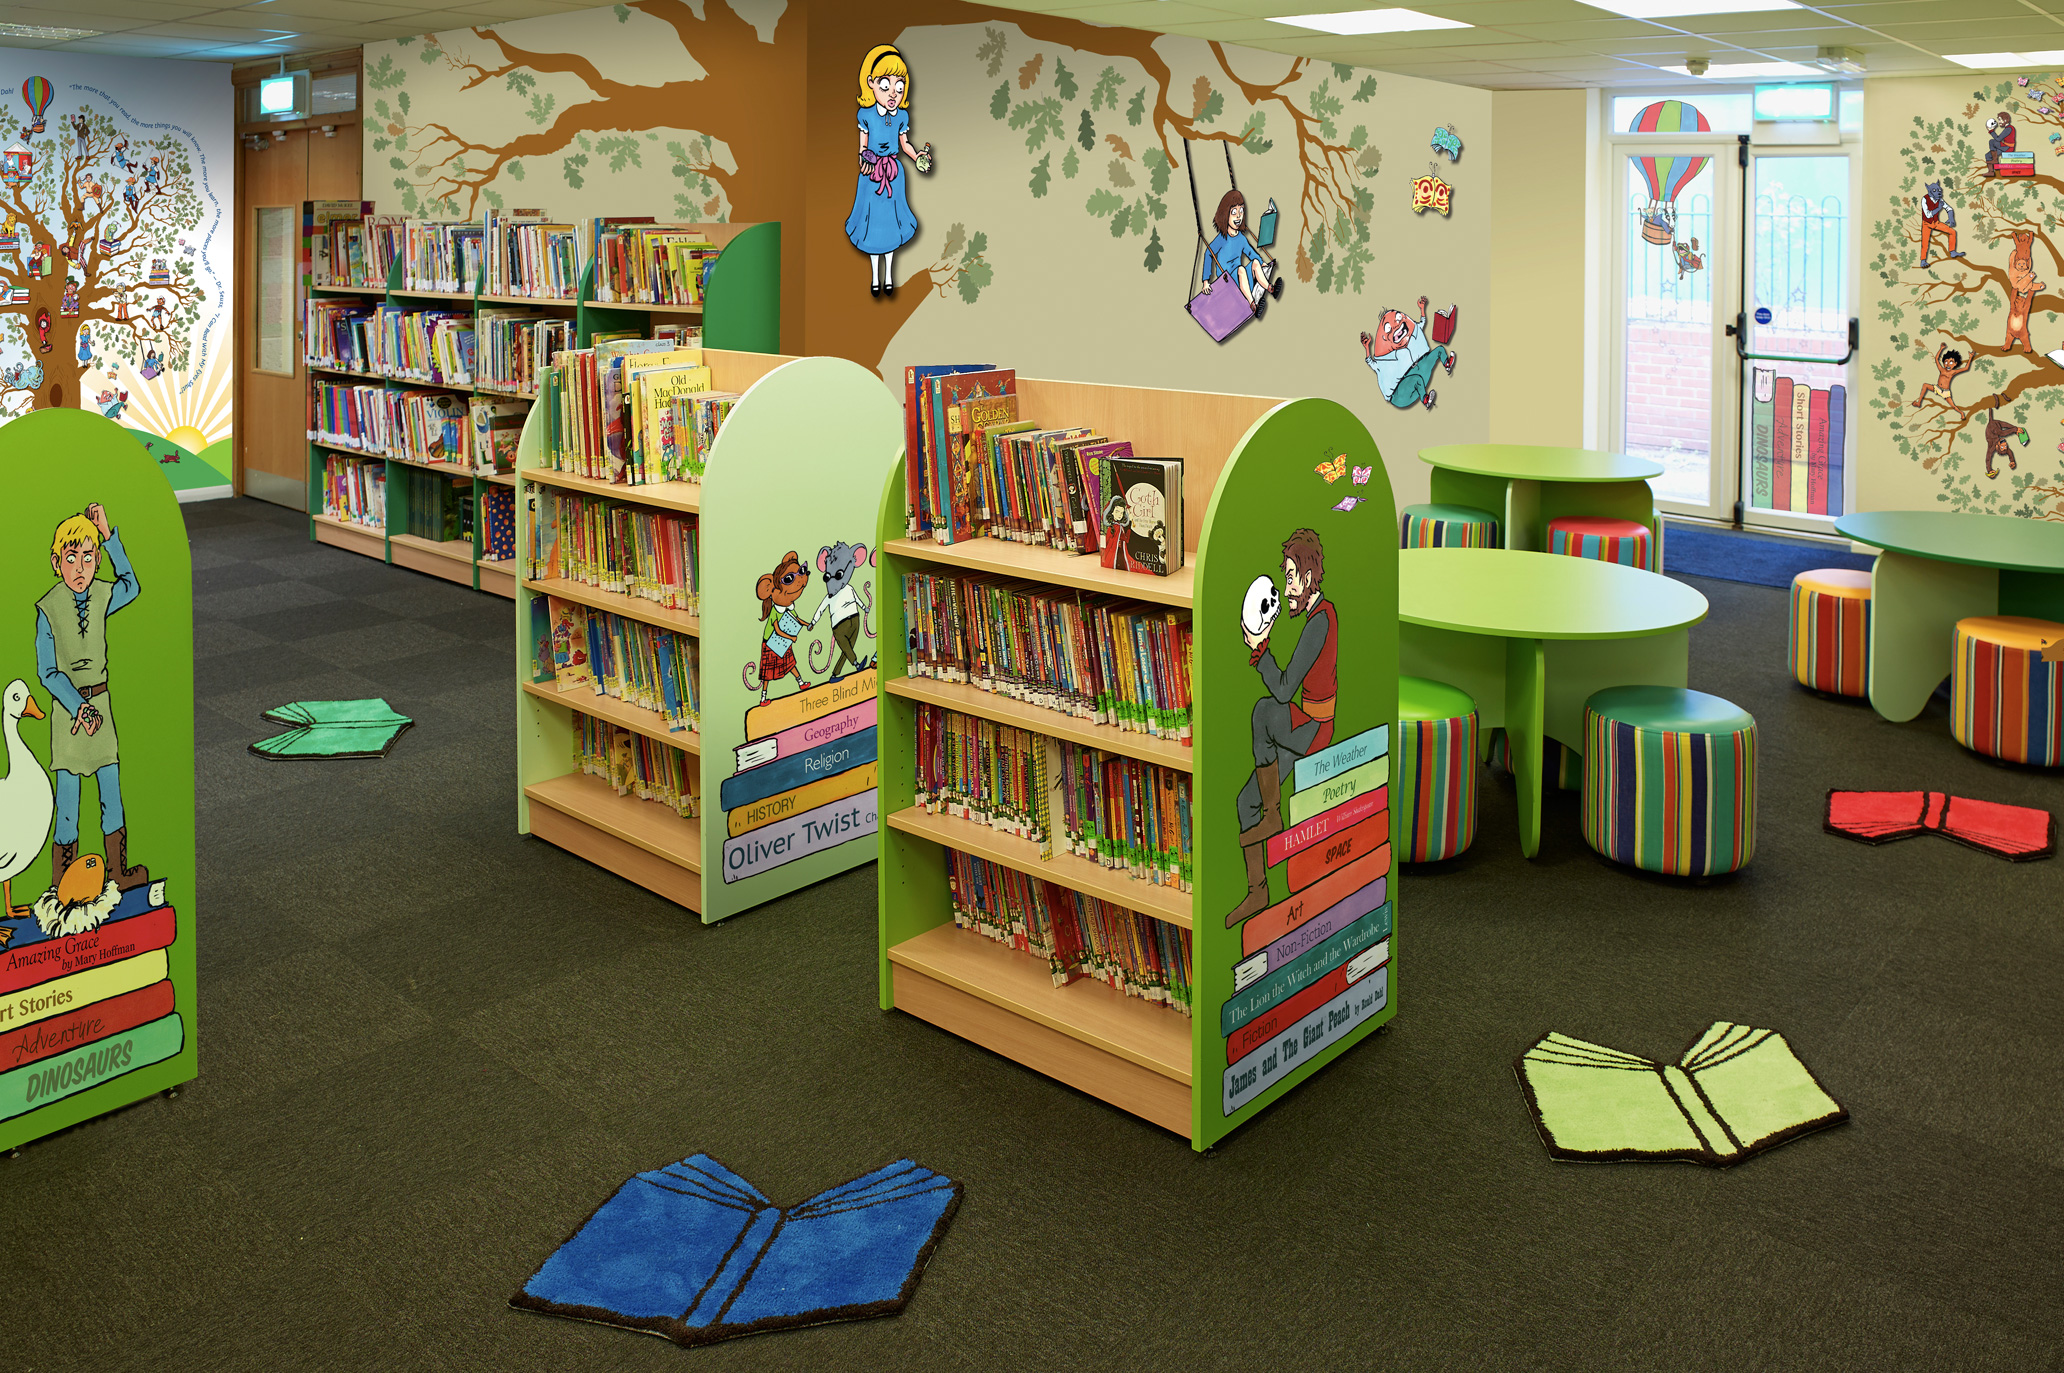 Classroom Display Design ~ Classroom reading area library displays the magical